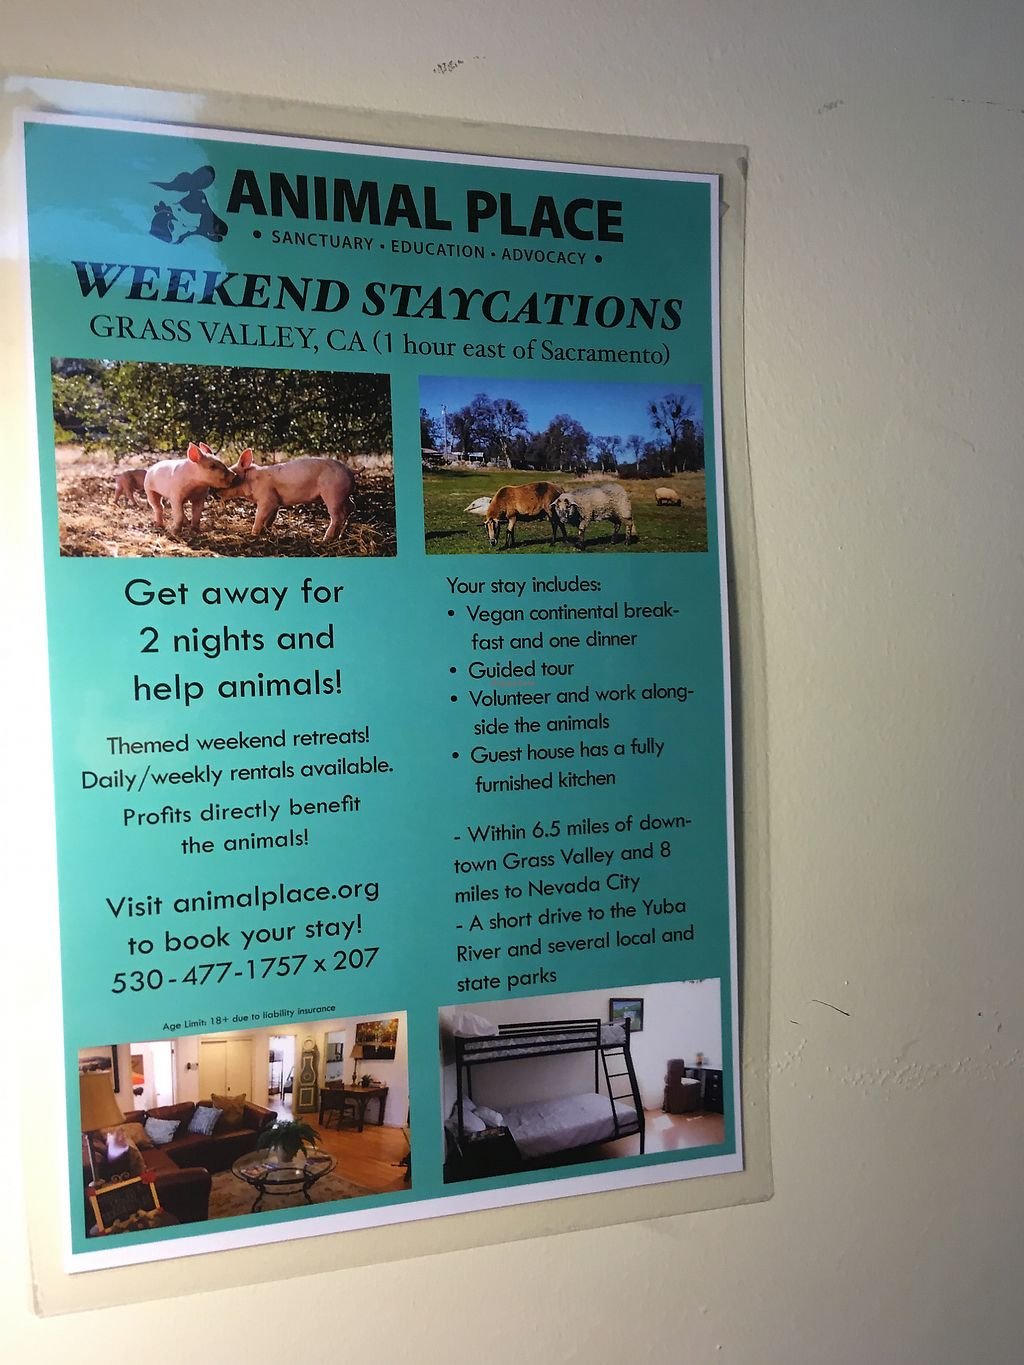 """Photo of Animal Place's Vegan Republic  by <a href=""""/members/profile/dvcucsc"""">dvcucsc</a> <br/>Even vegan vacation options <br/> February 6, 2018  - <a href='/contact/abuse/image/45427/355514'>Report</a>"""